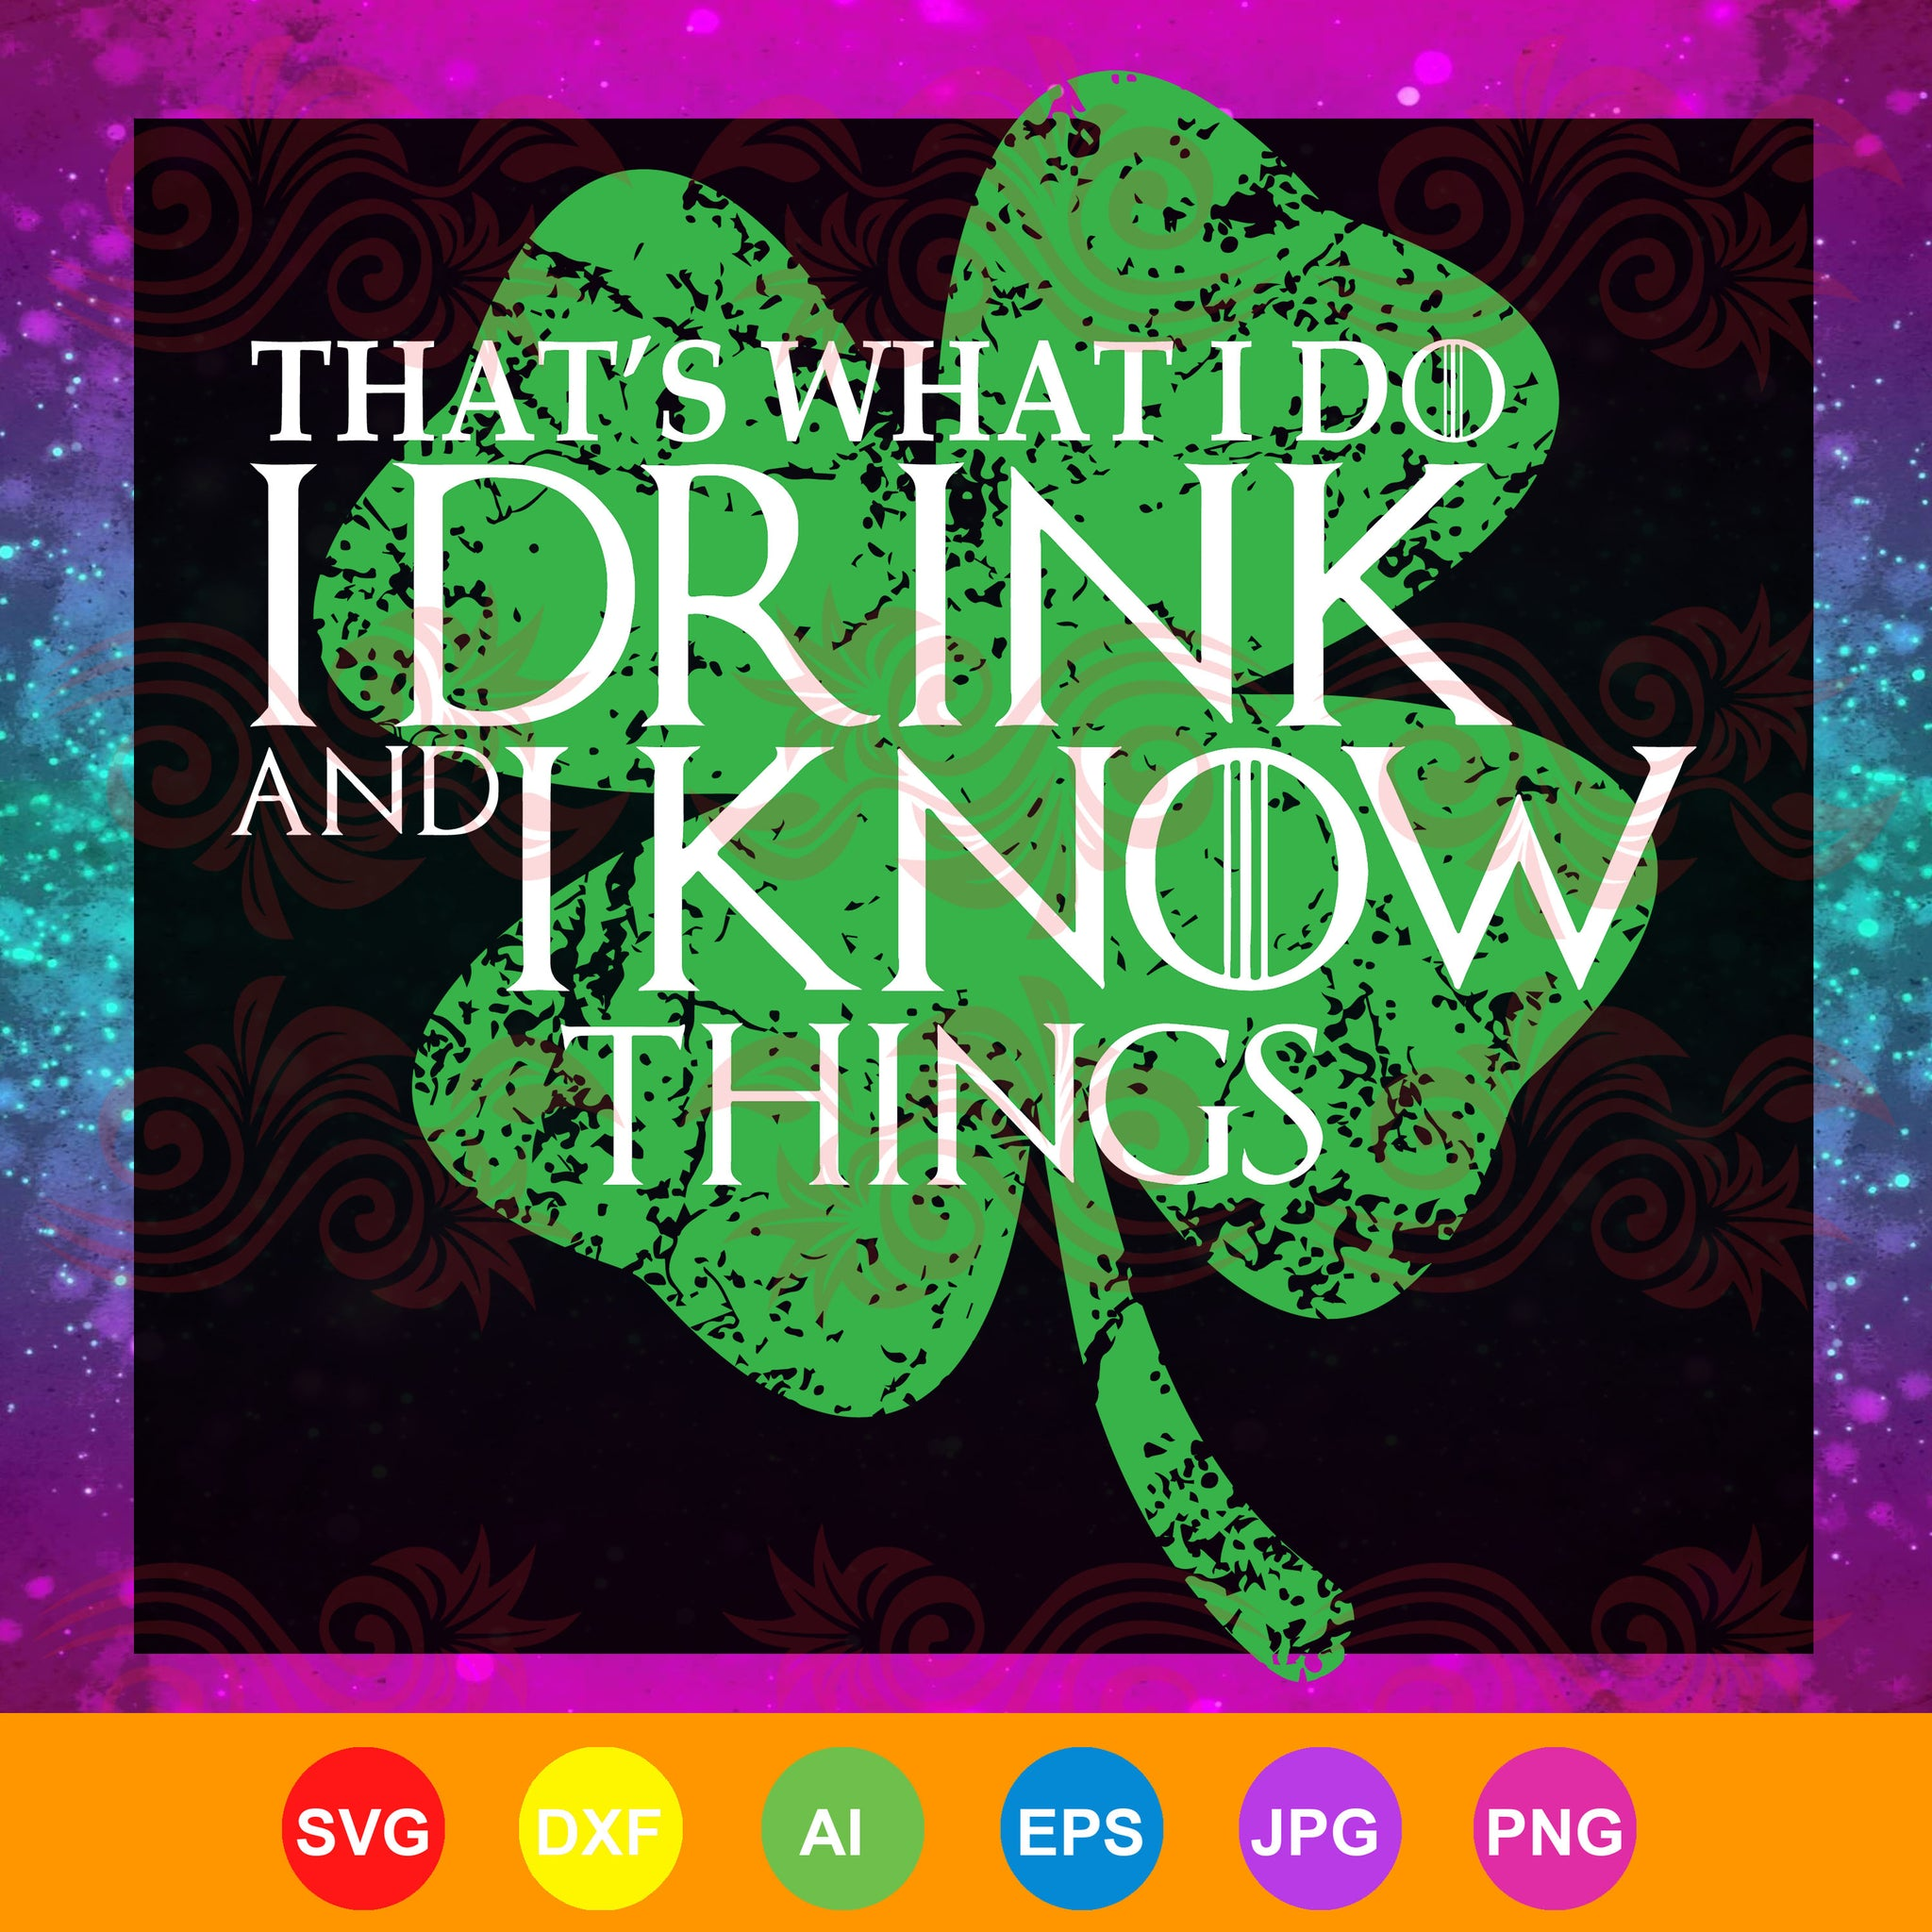 That's what I do I drink and I know things, st patrick's day, patrick svg, patrick's day, funny gifts, patrick day gifts,trending svg, Files For Silhouette, Files For Cricut, SVG, DXF, EPS, PNG, Instant Download